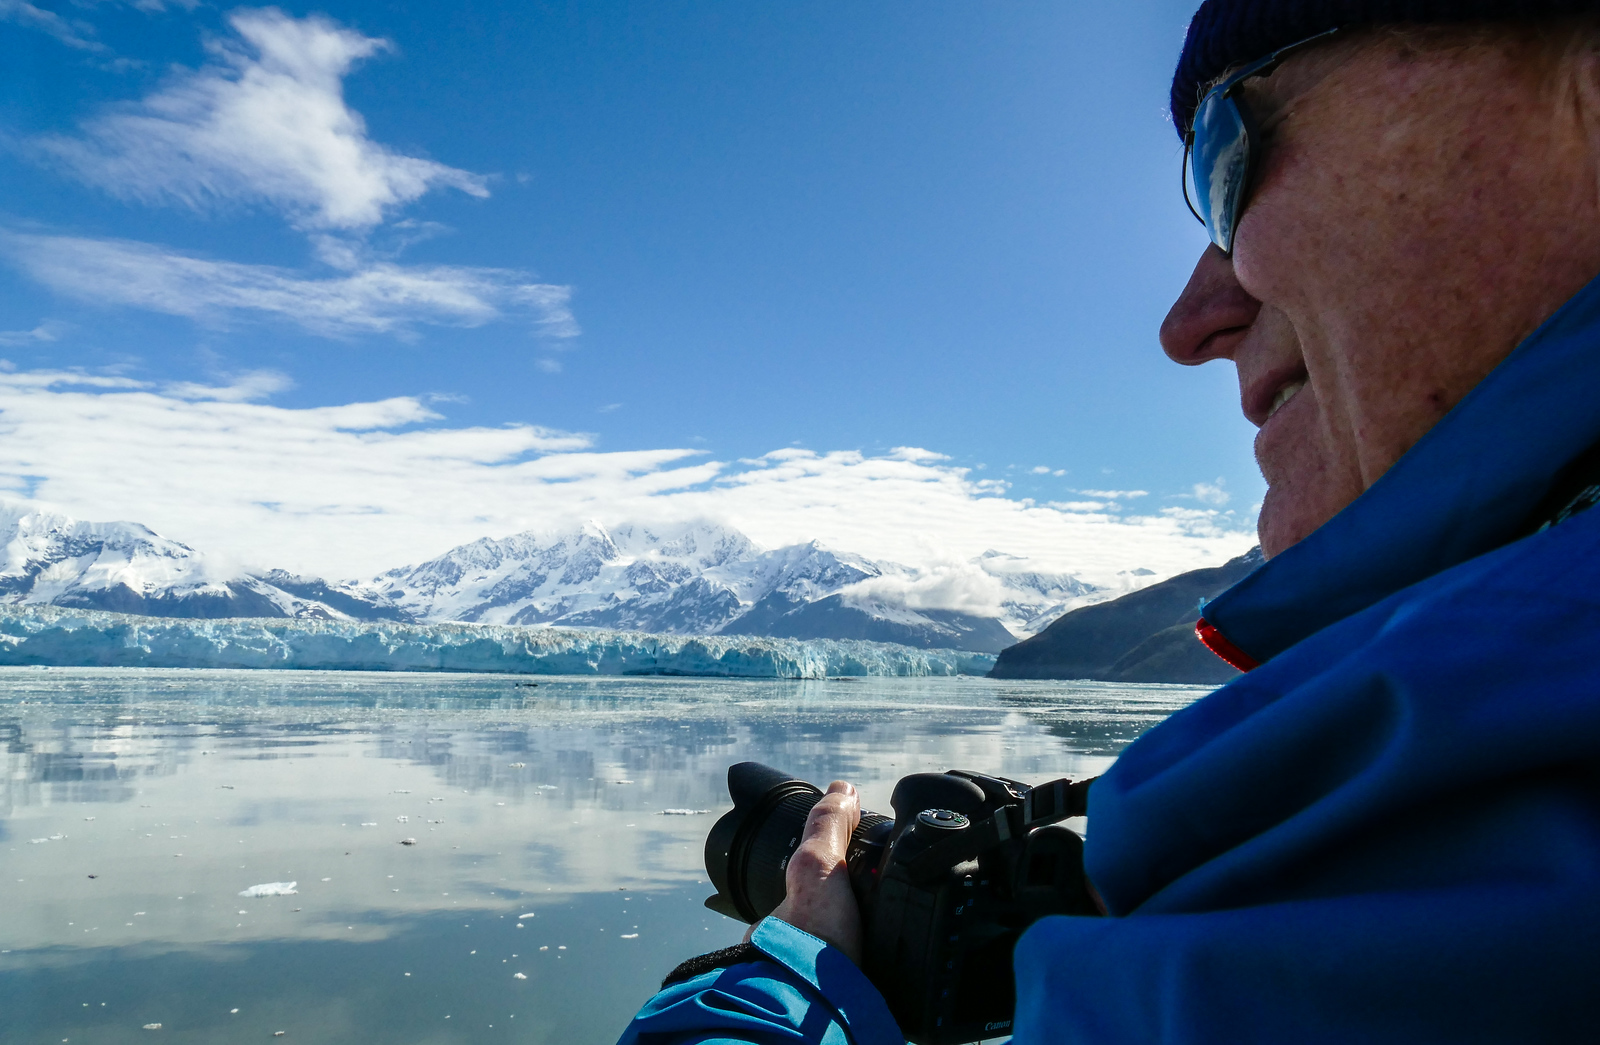 Man on a ship photographing a glacier.